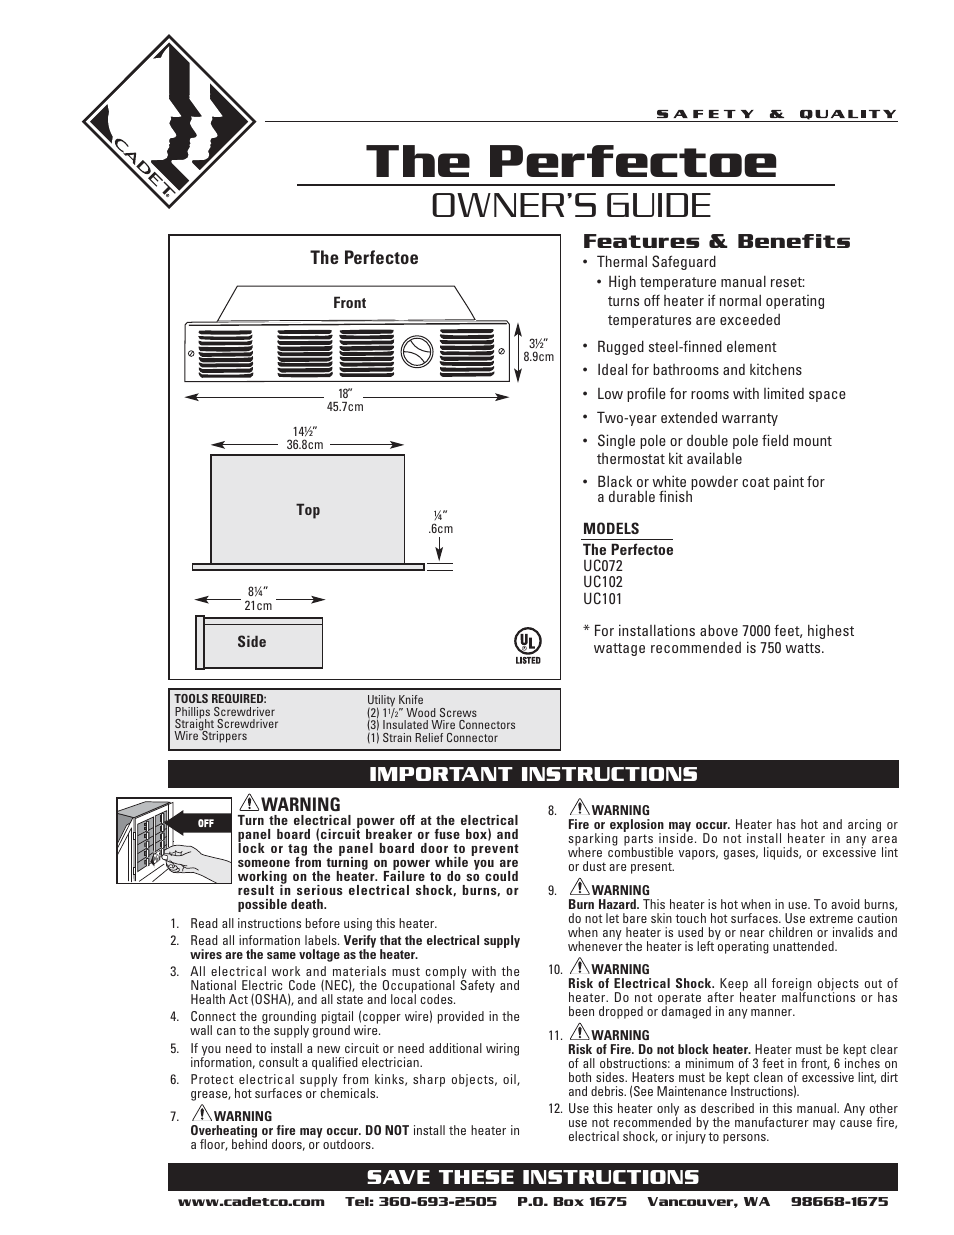 Cadet THE PERFECTOE UC102 User Manual | 8 pages | Also for: THE PERFECTOE  UC101, THE PERFECTOE UC072